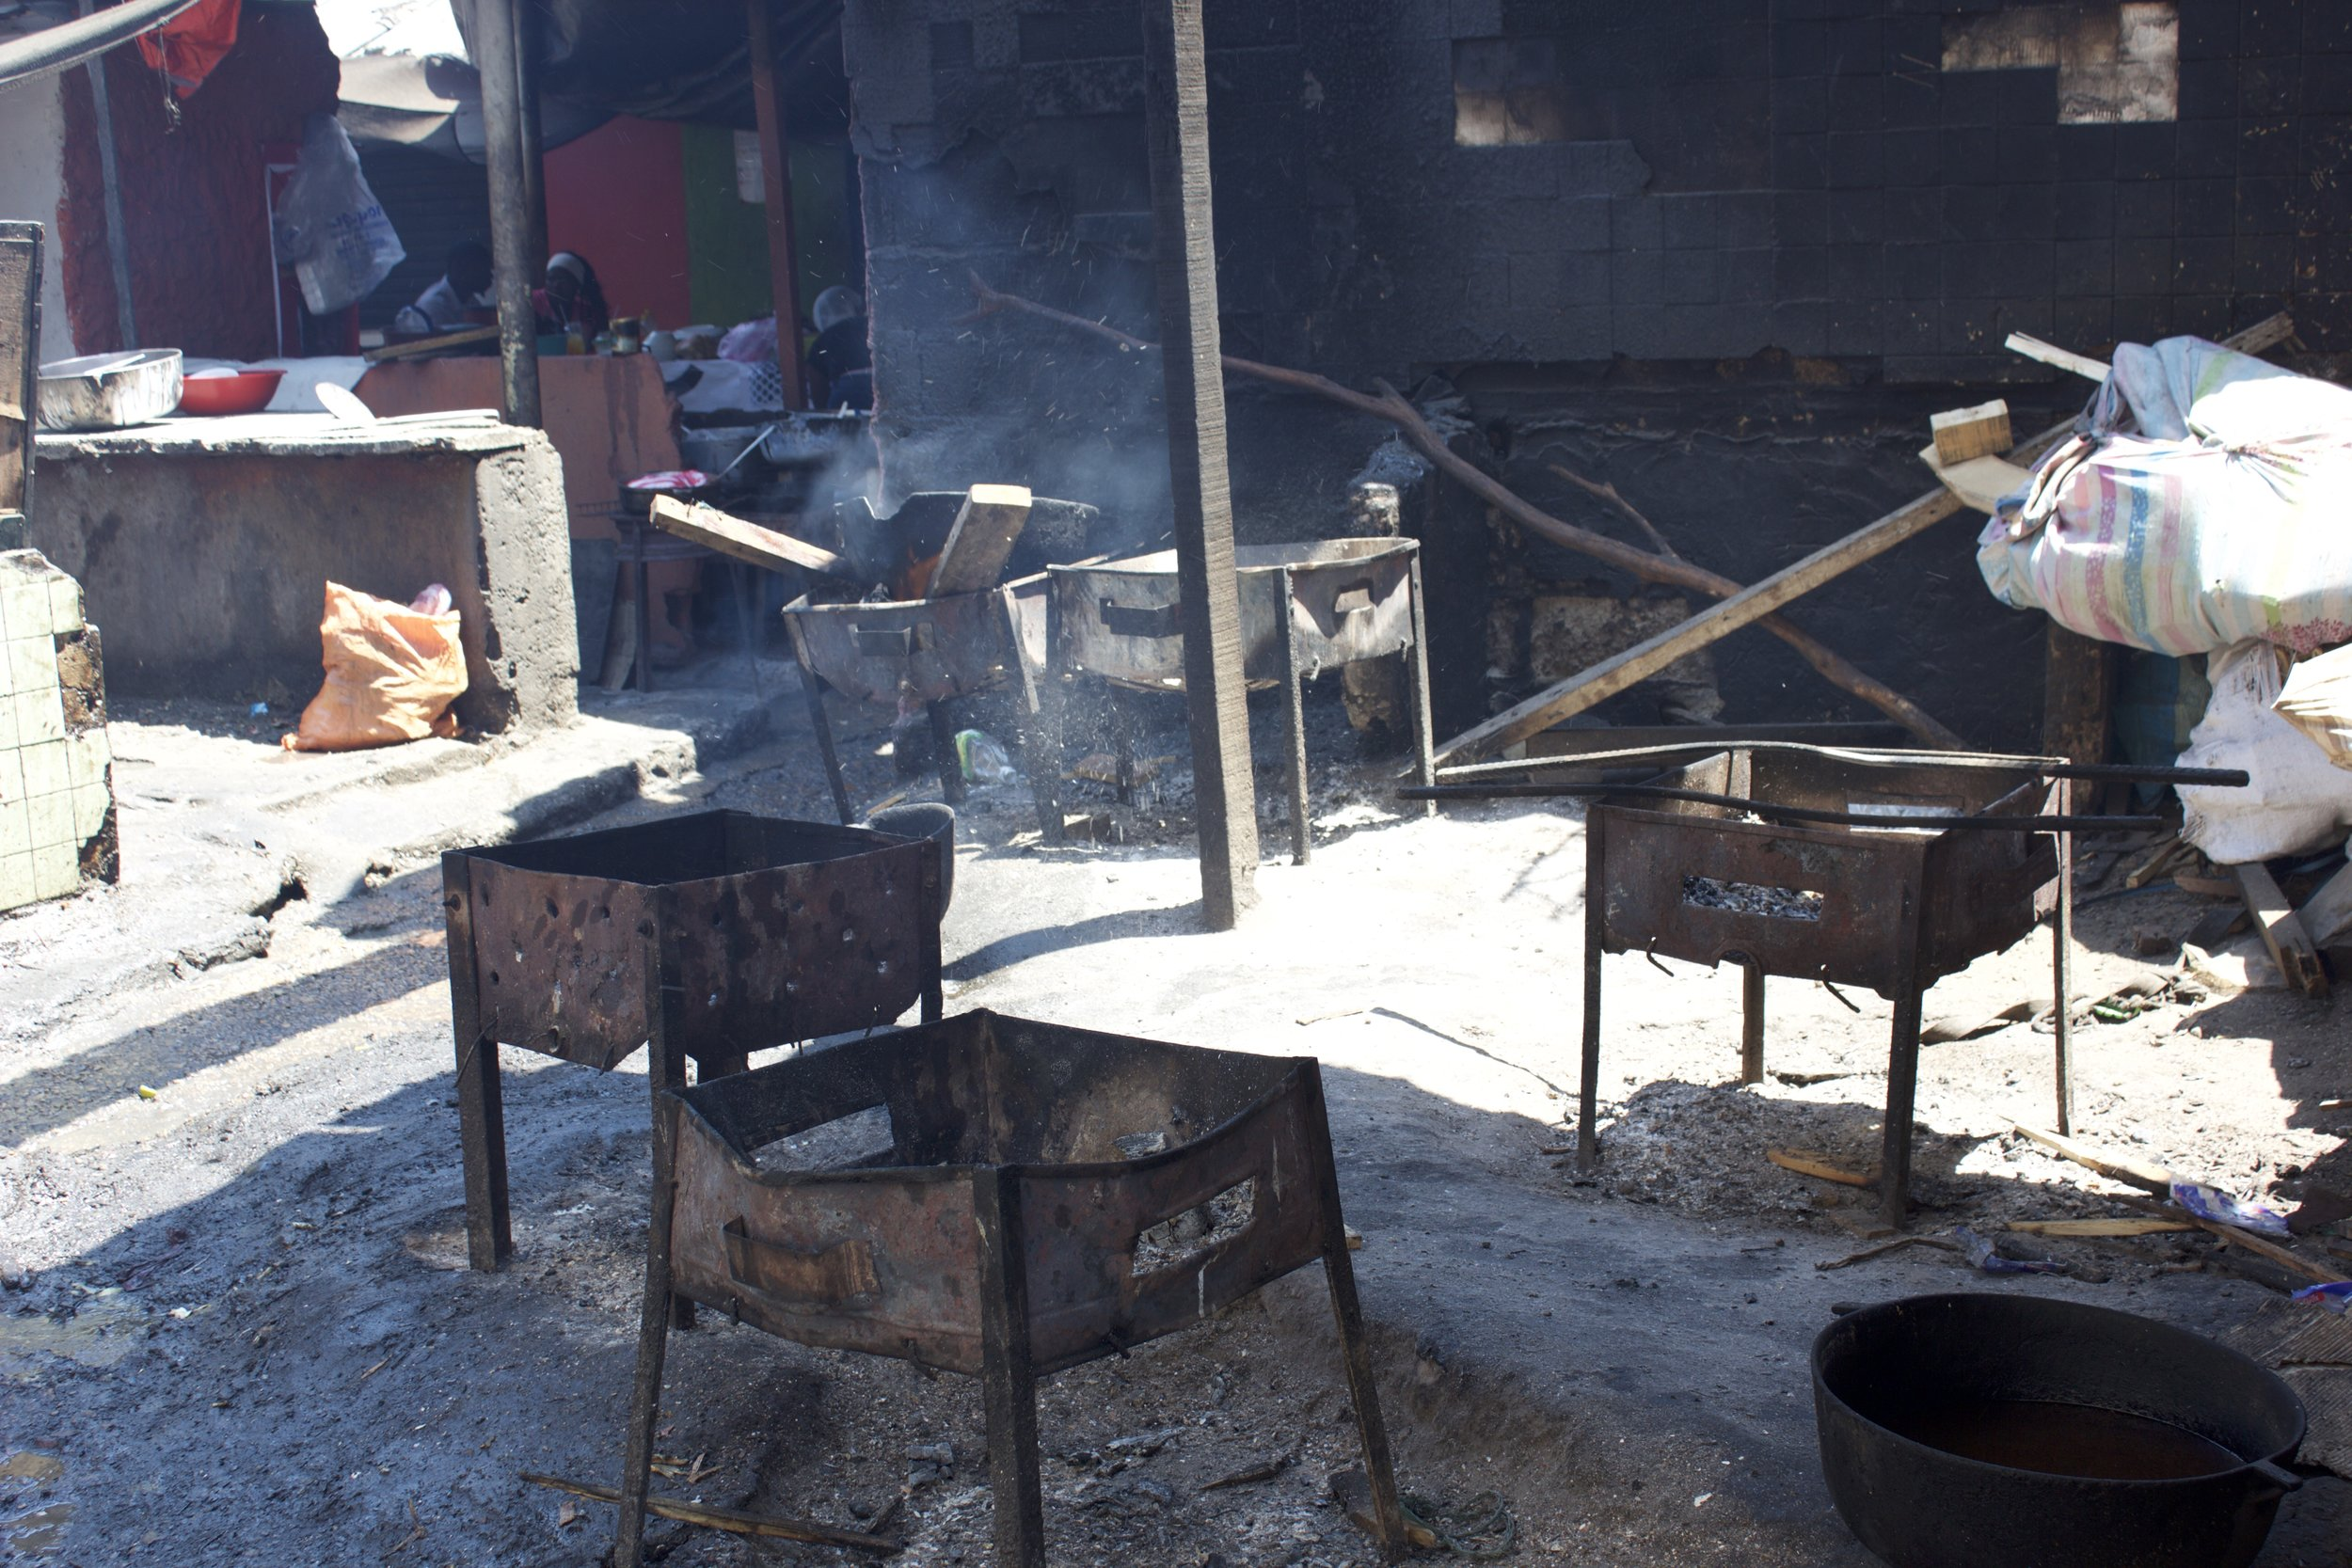 Where lunch was cooked.jpg